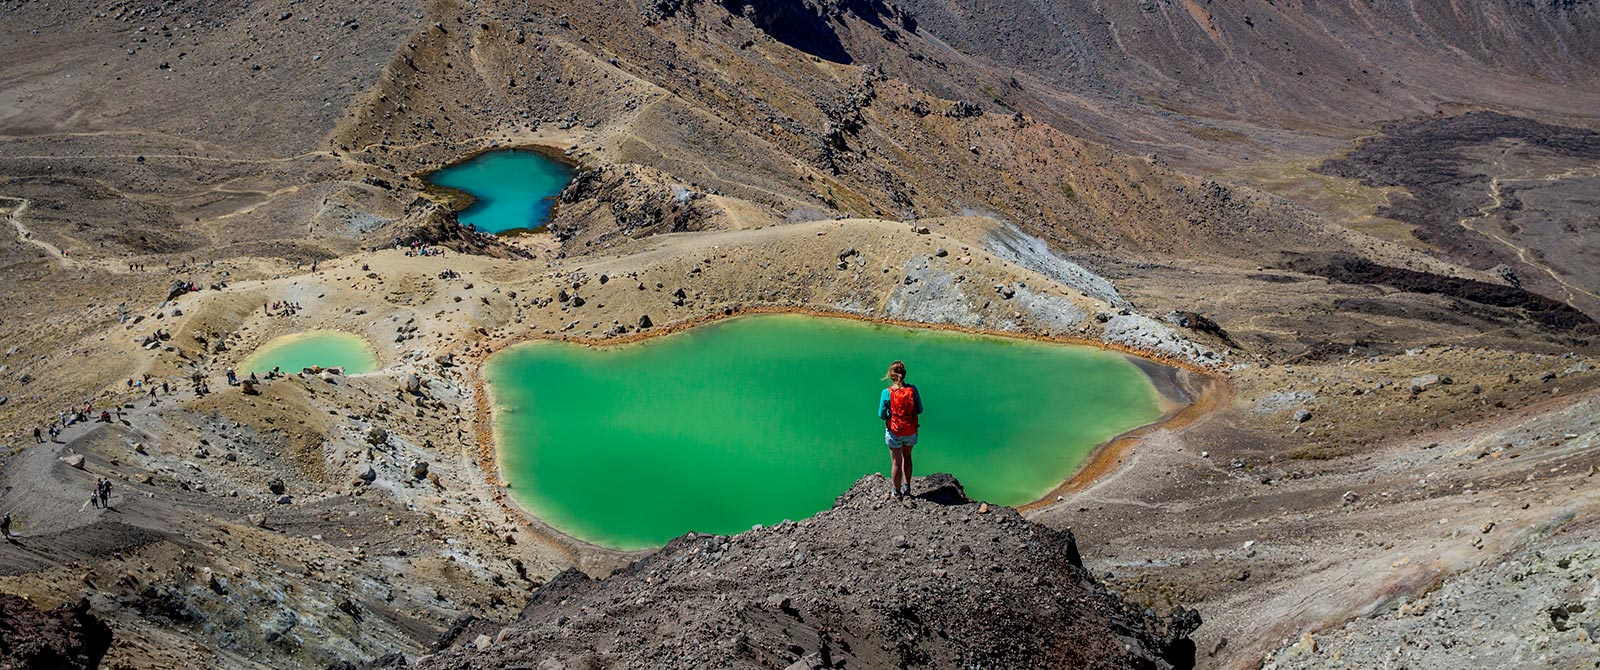 Tongariro Alpine Crossing New Zealand - Active Nature Retreat